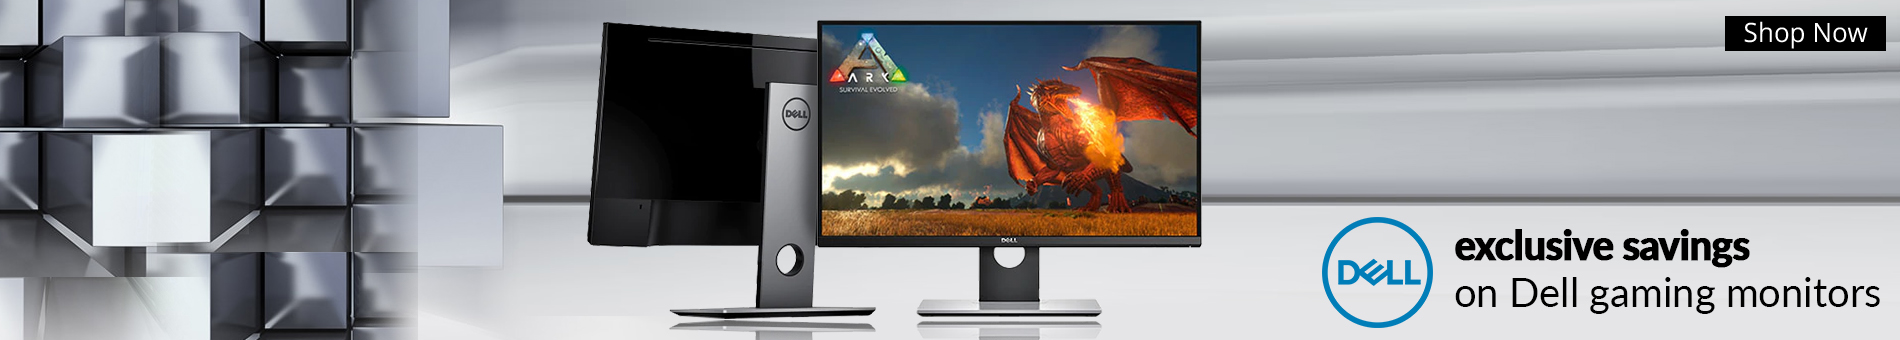 Dell Gaming Monitors Landing Page Edit 01  Feature 01